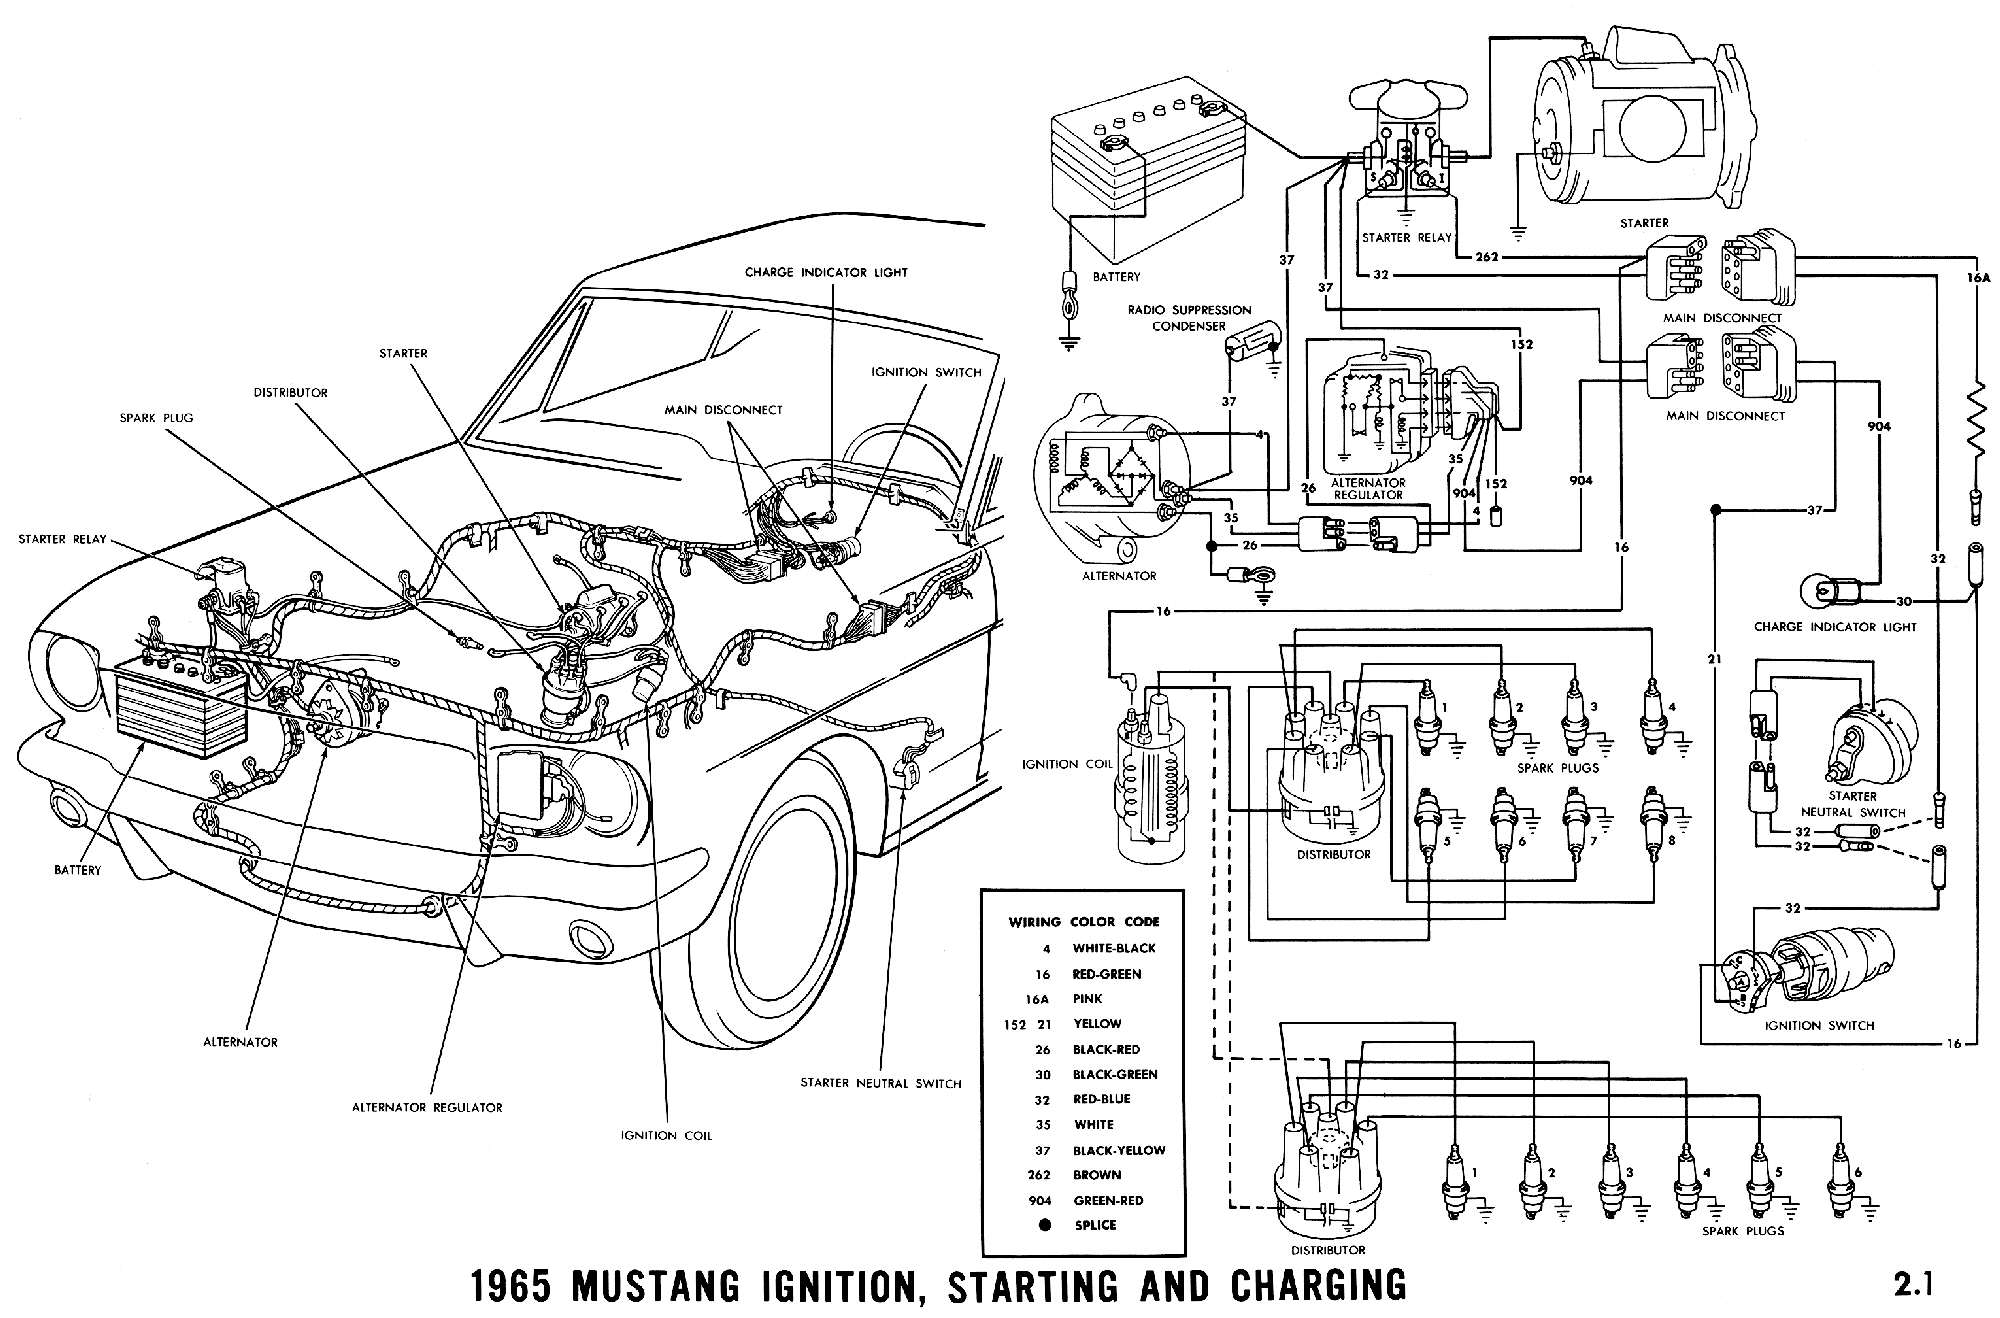 1965 mustang wiring diagrams average joe restoration 1965c 1965 mustang ignition sciox Images